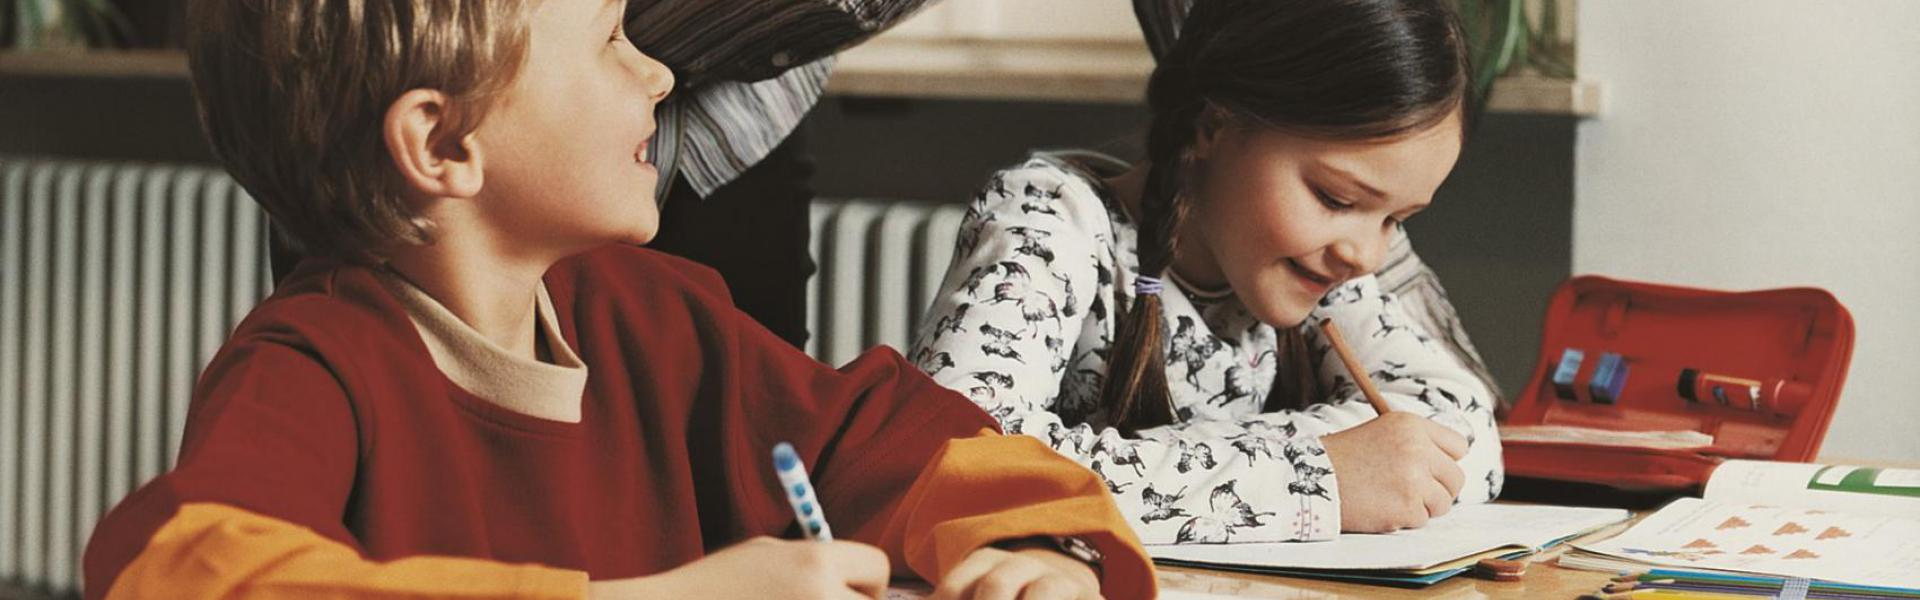 A girl and a boy studying with their teacher helping.